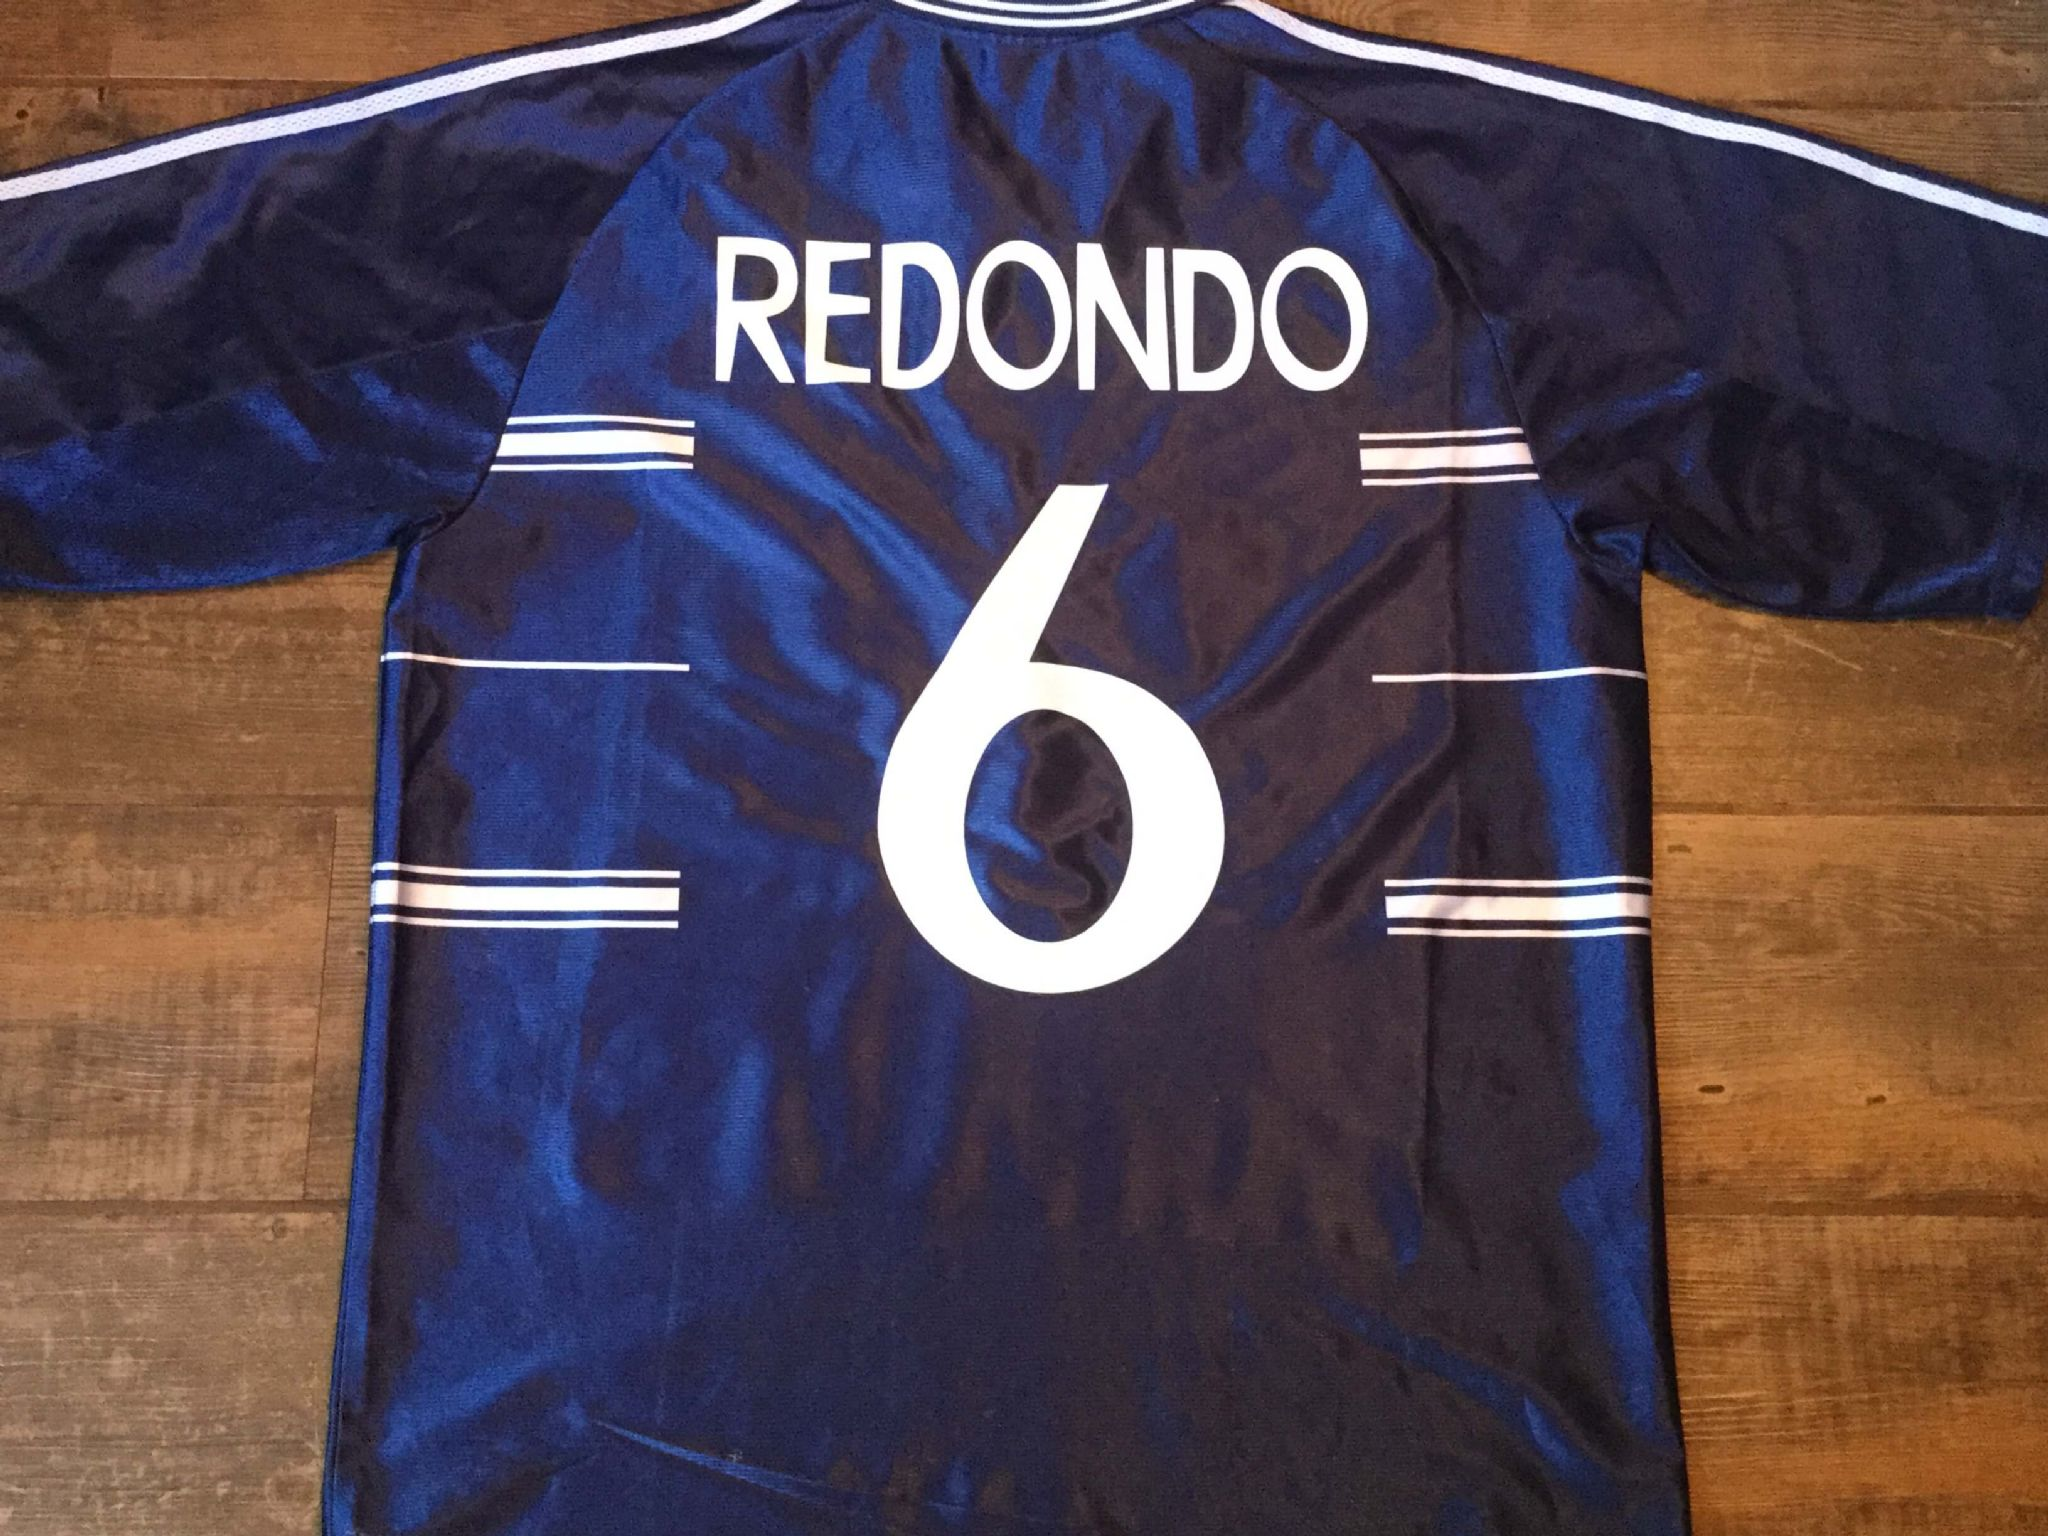 a7a02be2a 1998 1999 Real Madrid Redondo Football Shirt Adults Large